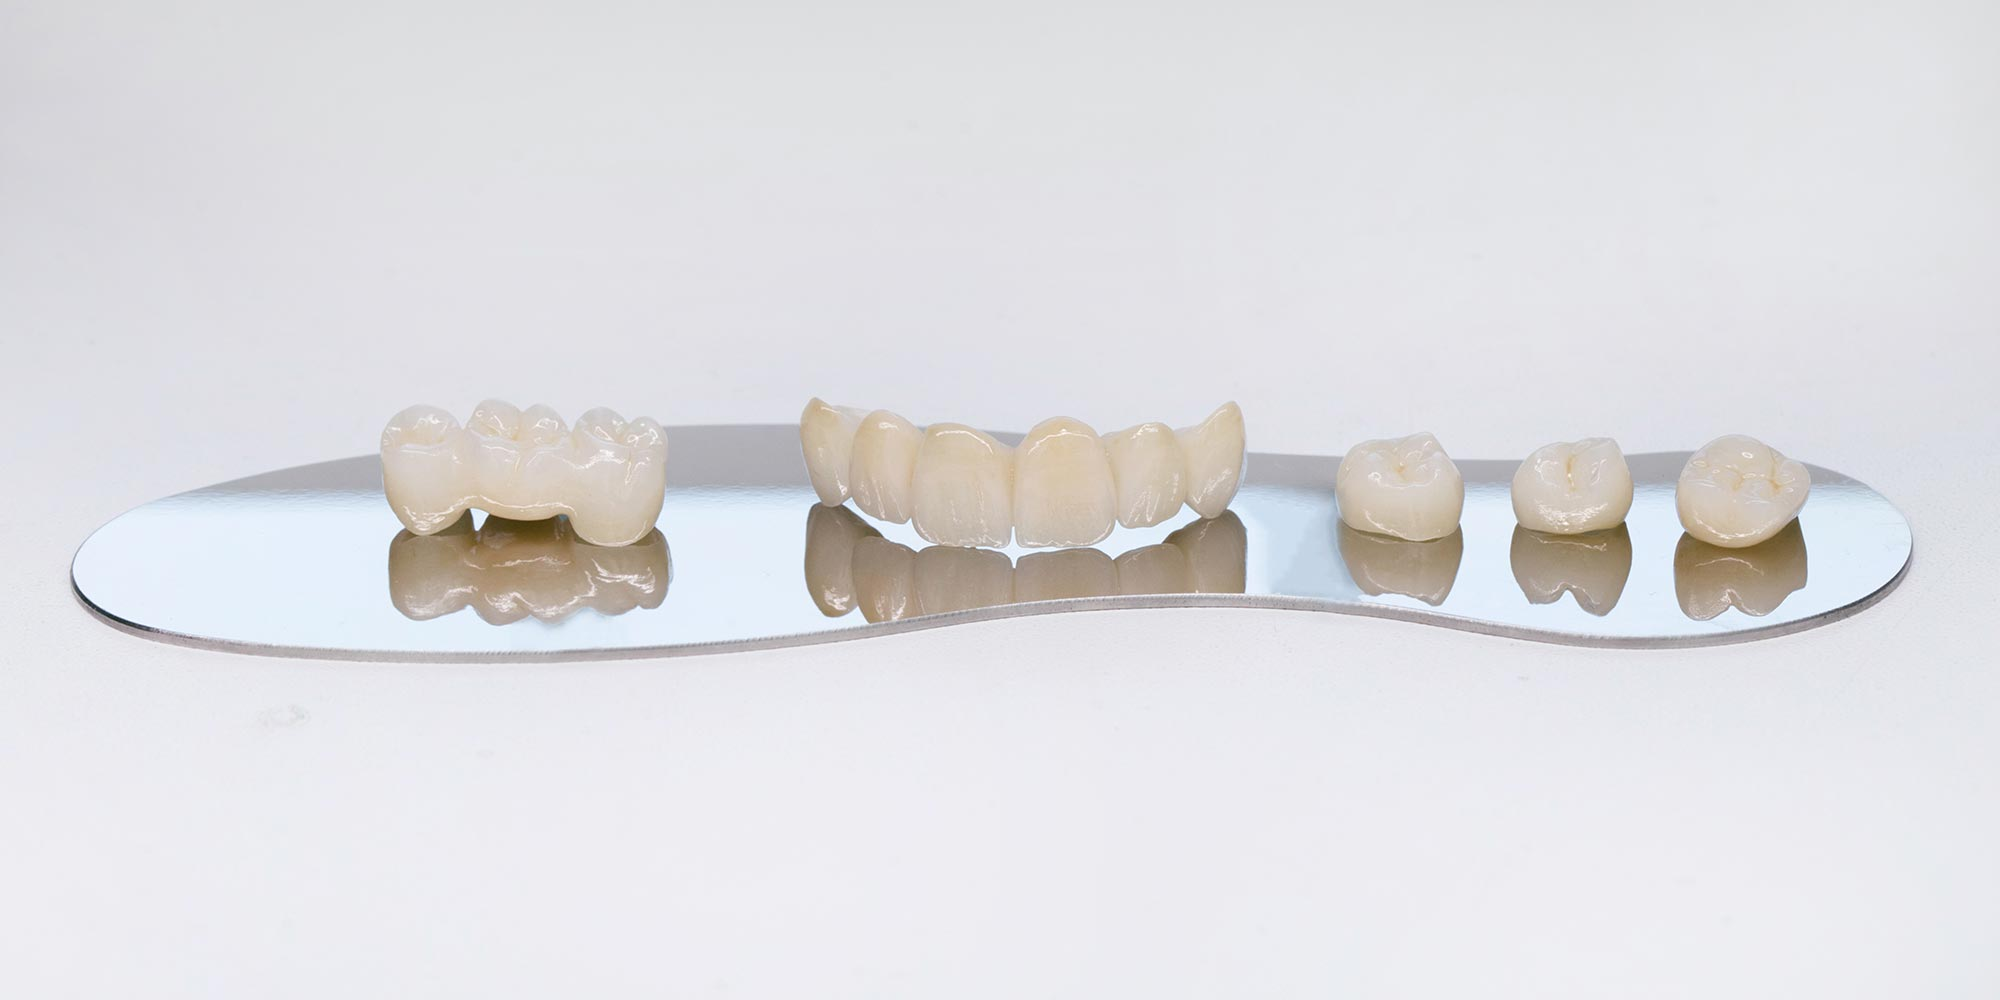 Restoring smiles in Salisbury – Crowns versus Bridges